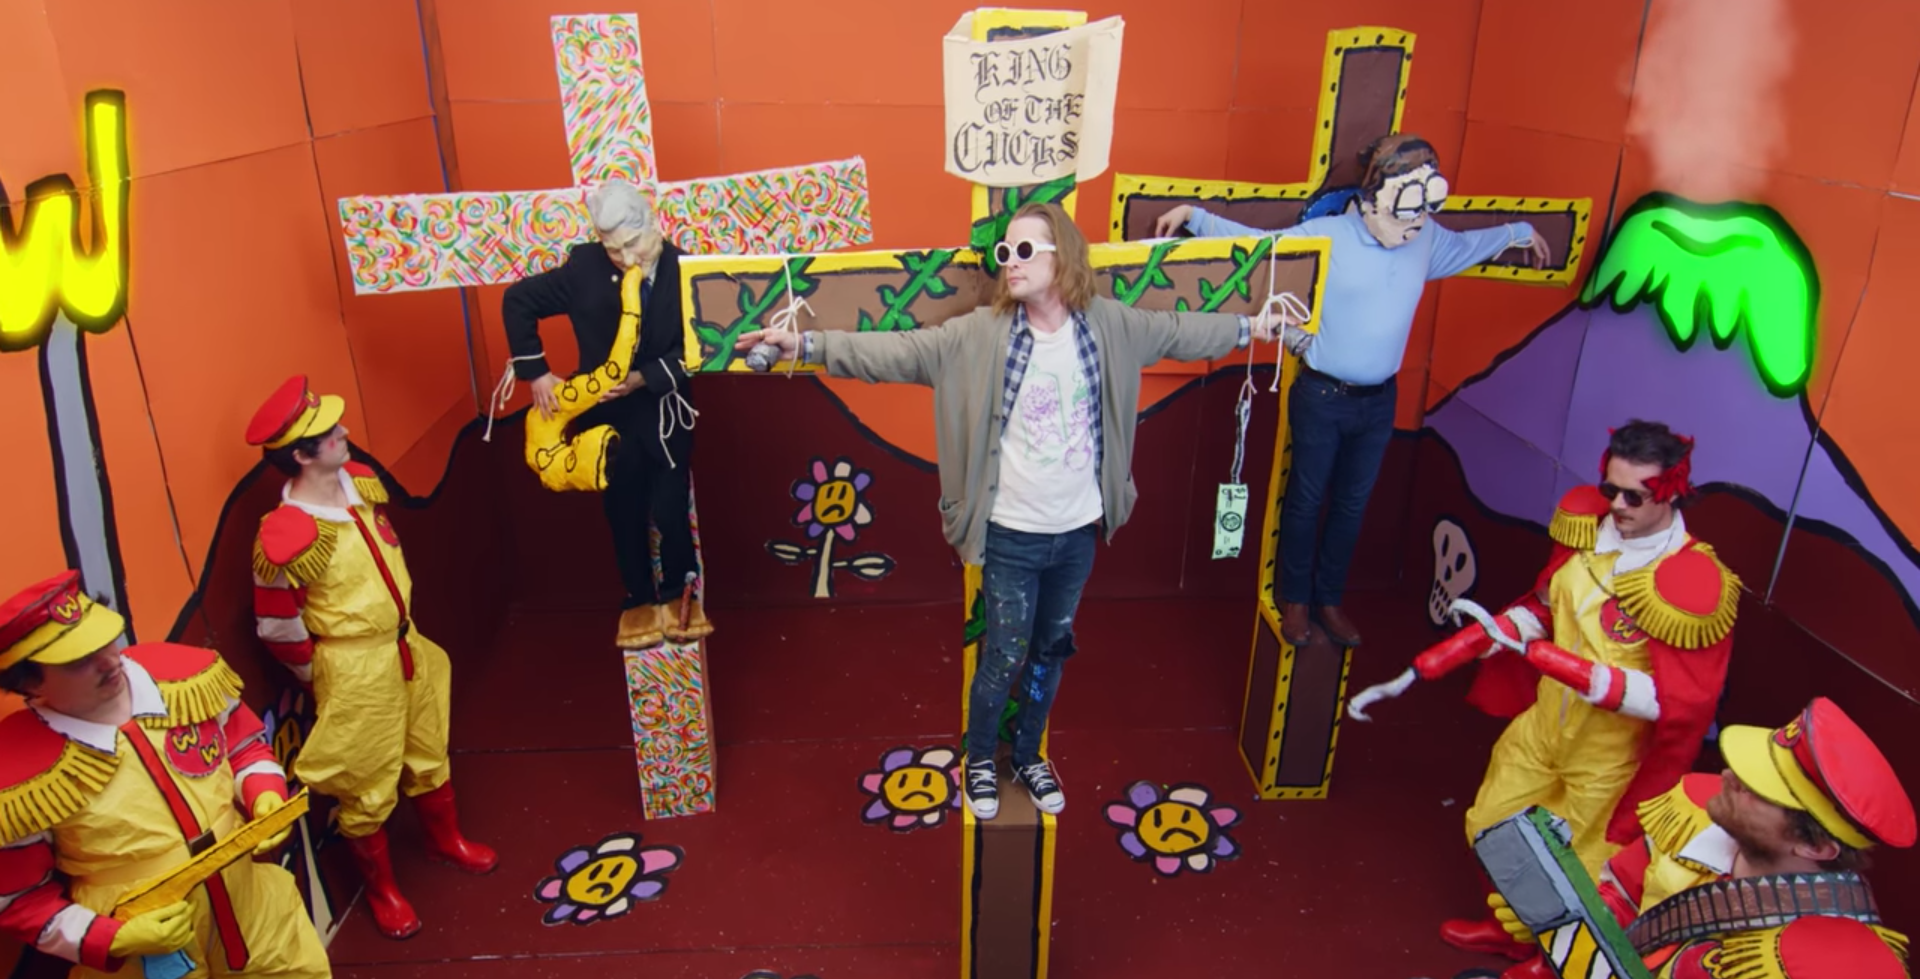 Father John Misty crucifica a Macaulay Culkin, Bill Clinton y Jon Bonachon en su nuevo video